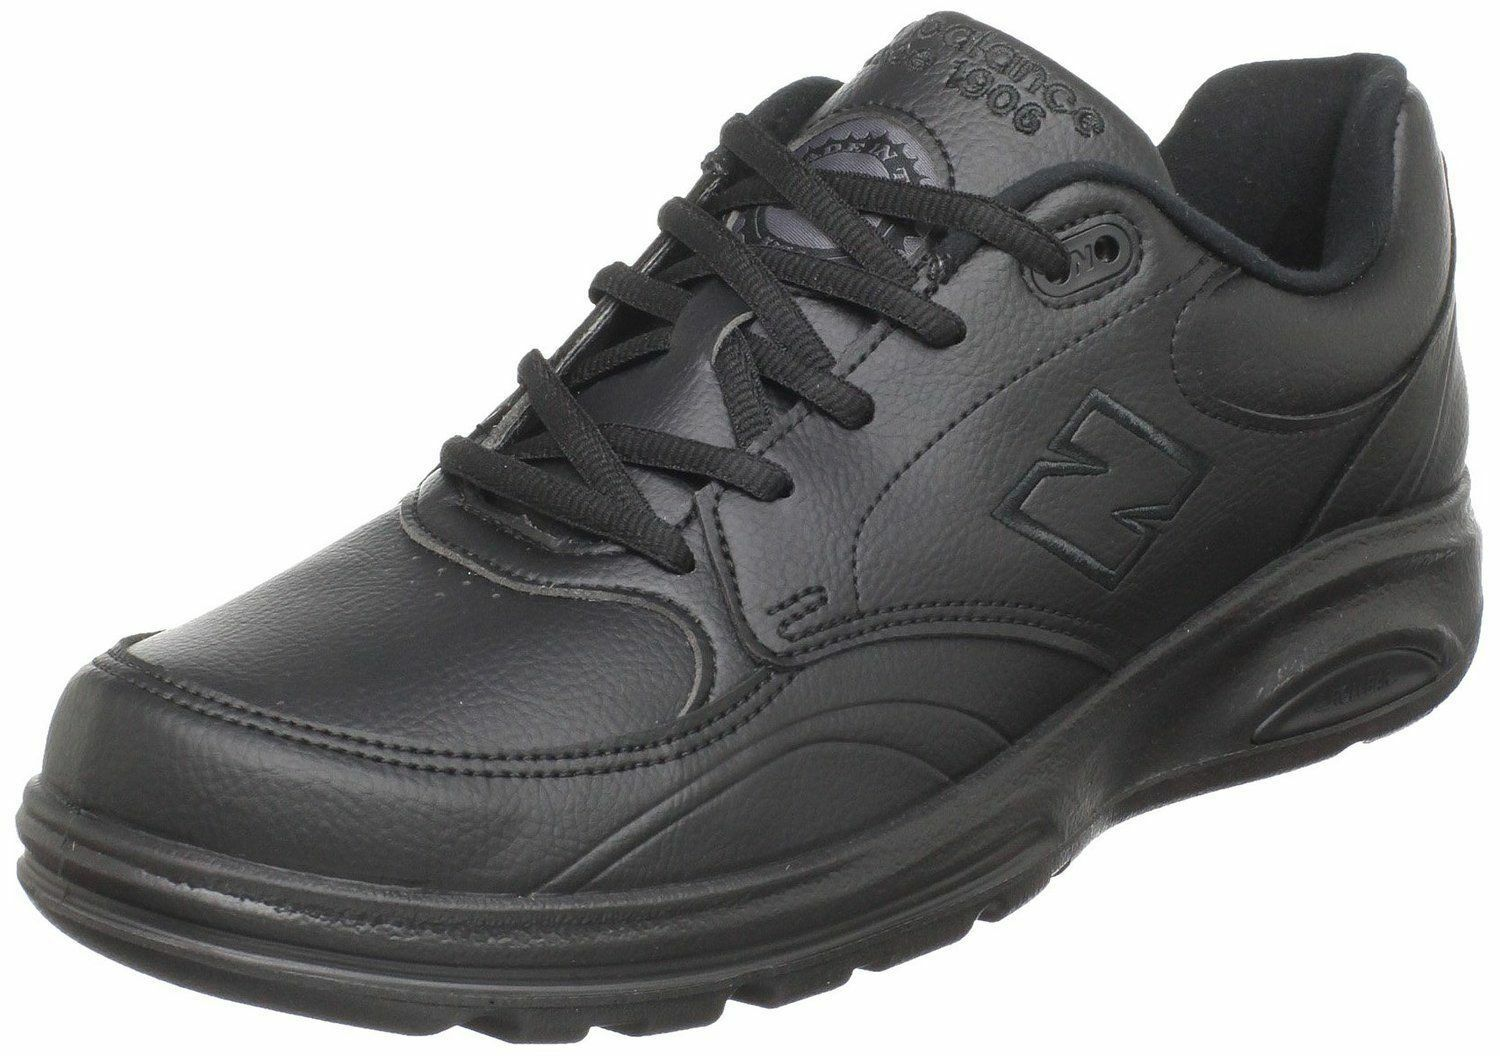 New Balance Men's MW812 Black Leather Lace-up Walking shoes